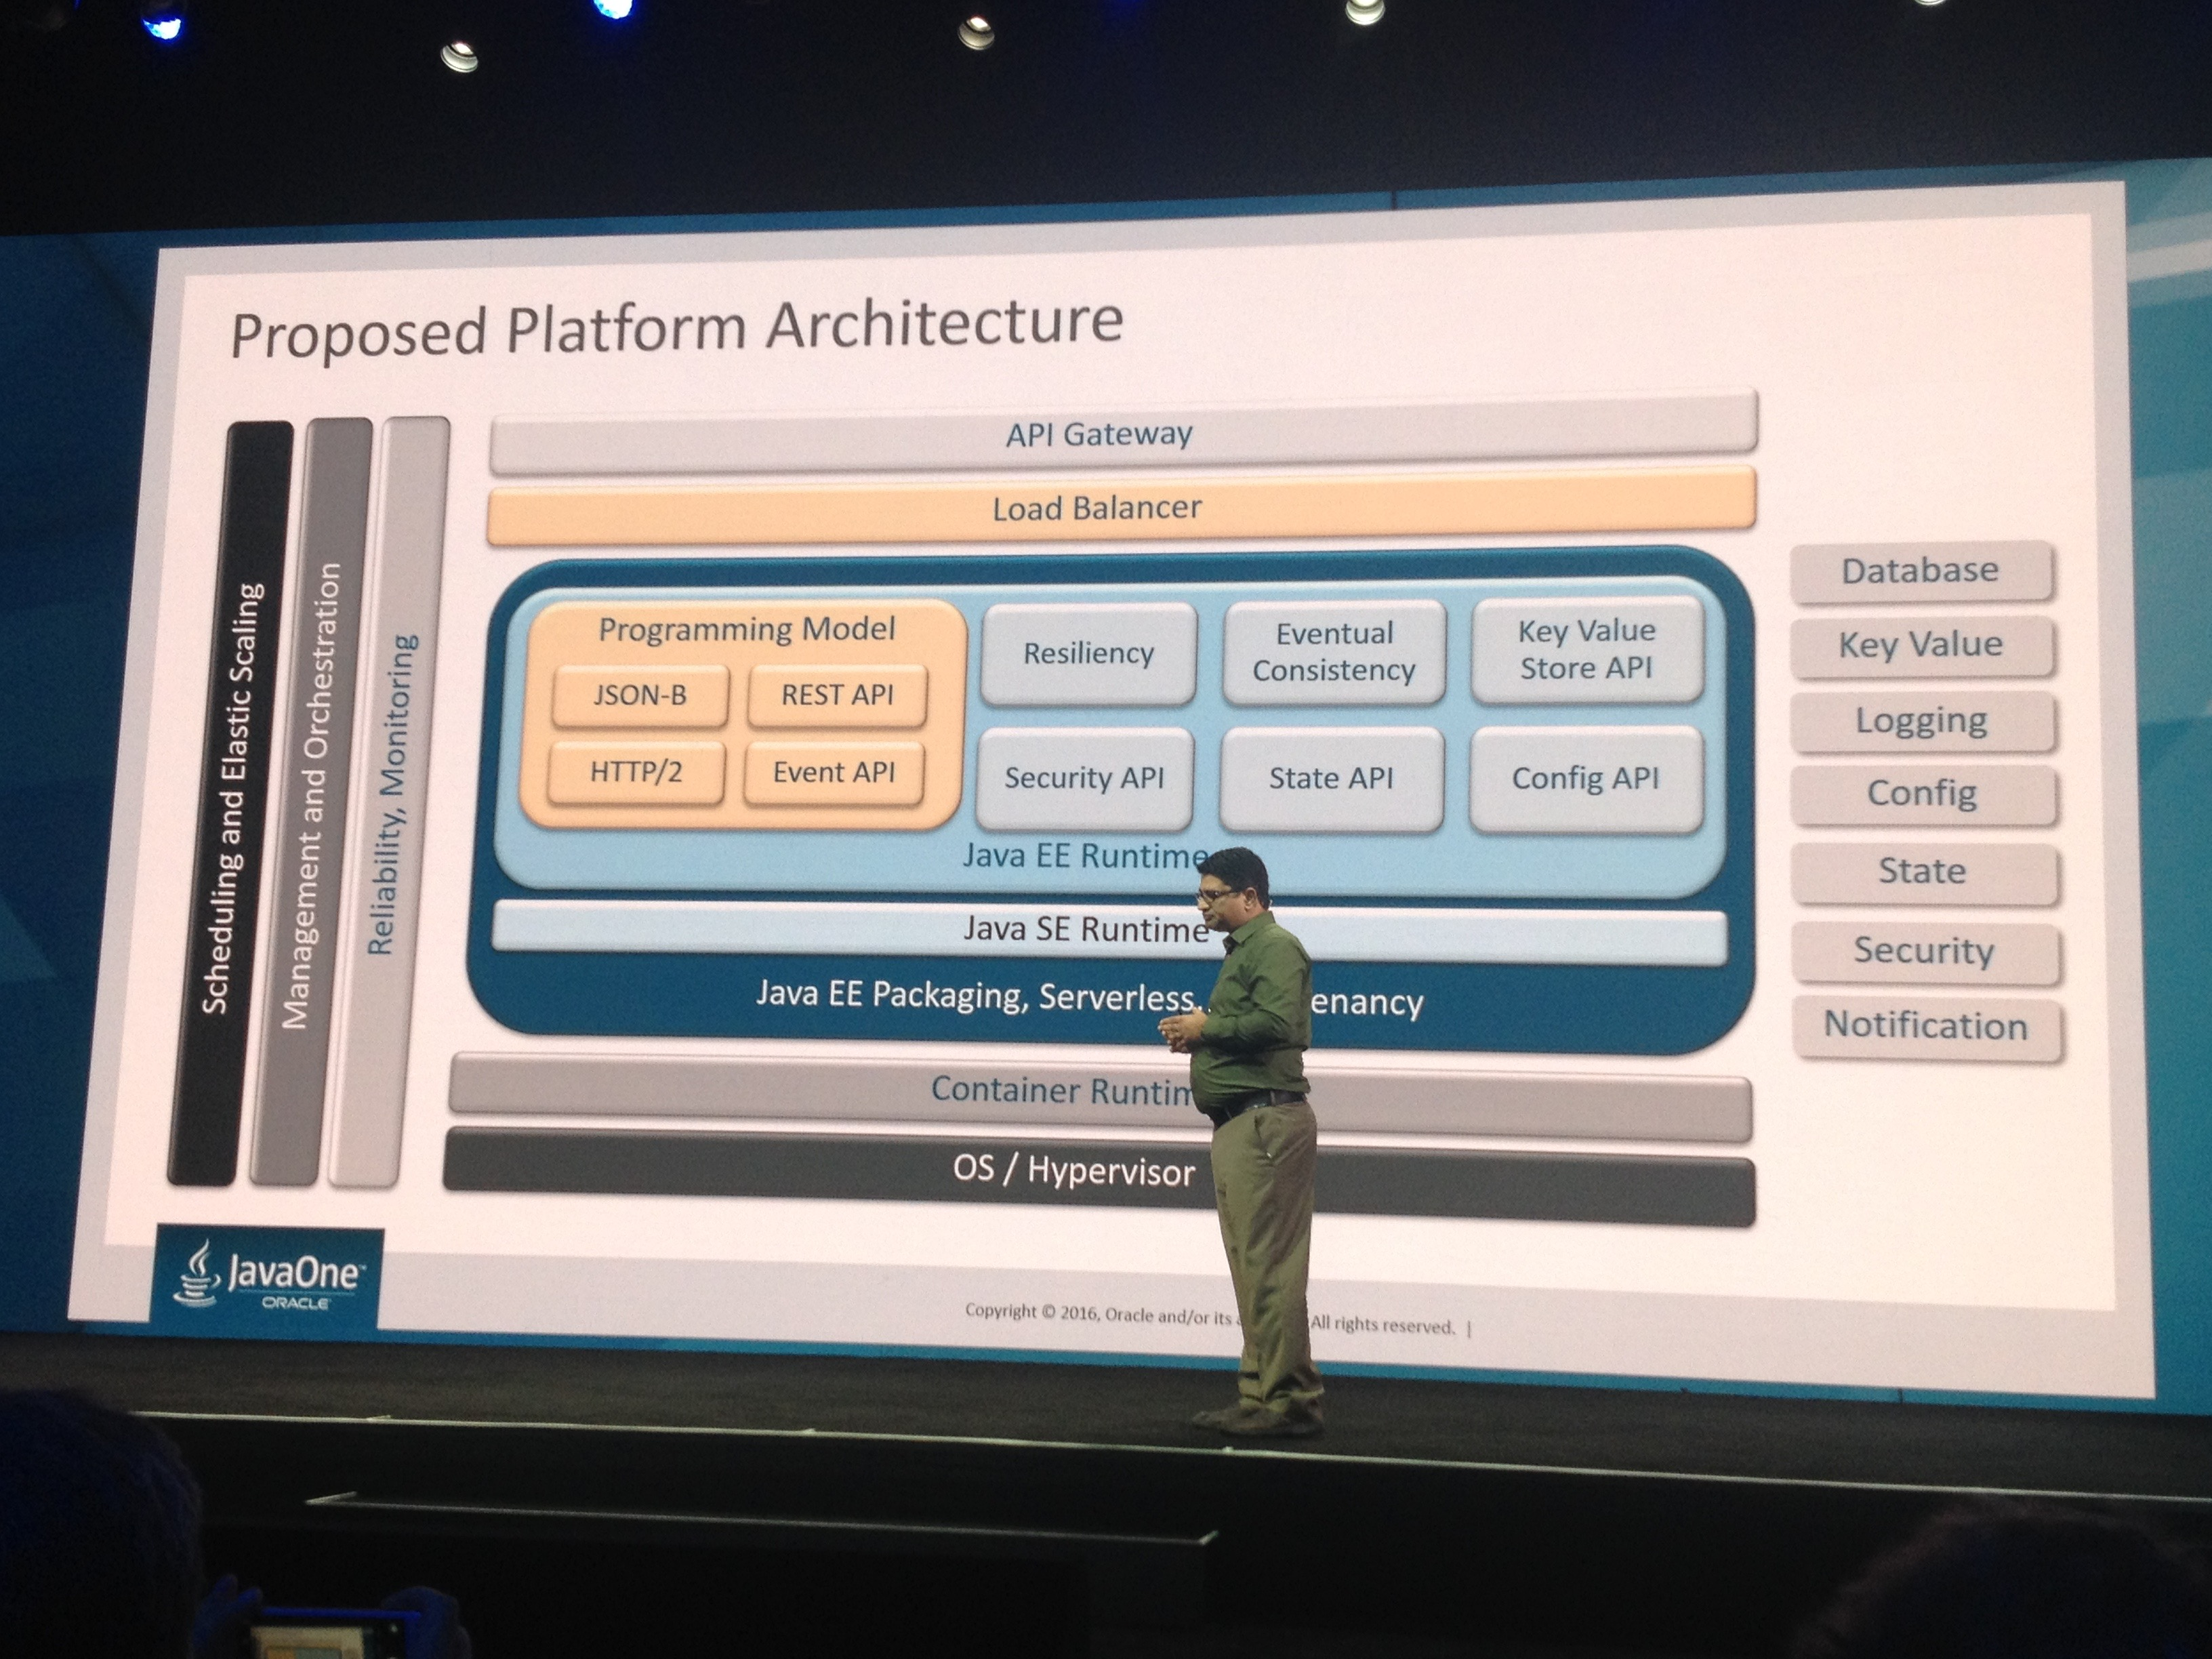 Proposed Platform Architecture for Java EE